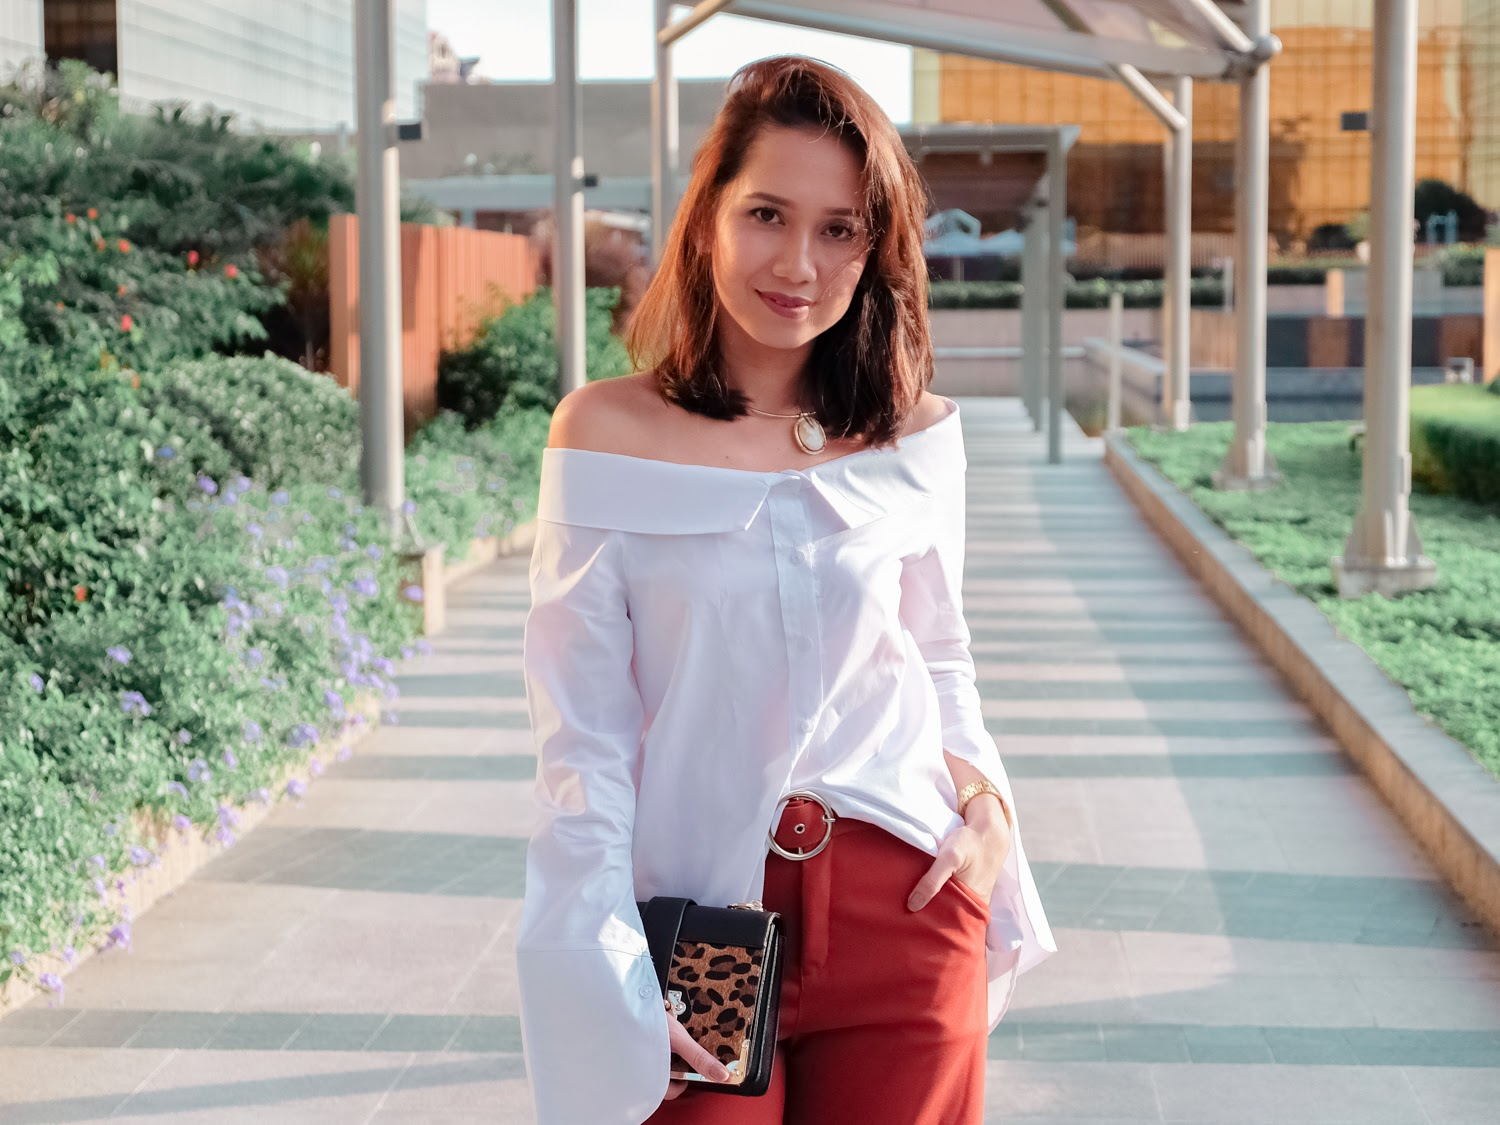 Warm In Terra Cotta Perfumed Red Shoes Cebu Fashion Beauty And Lifestyle Blog By Toni Pino Oca